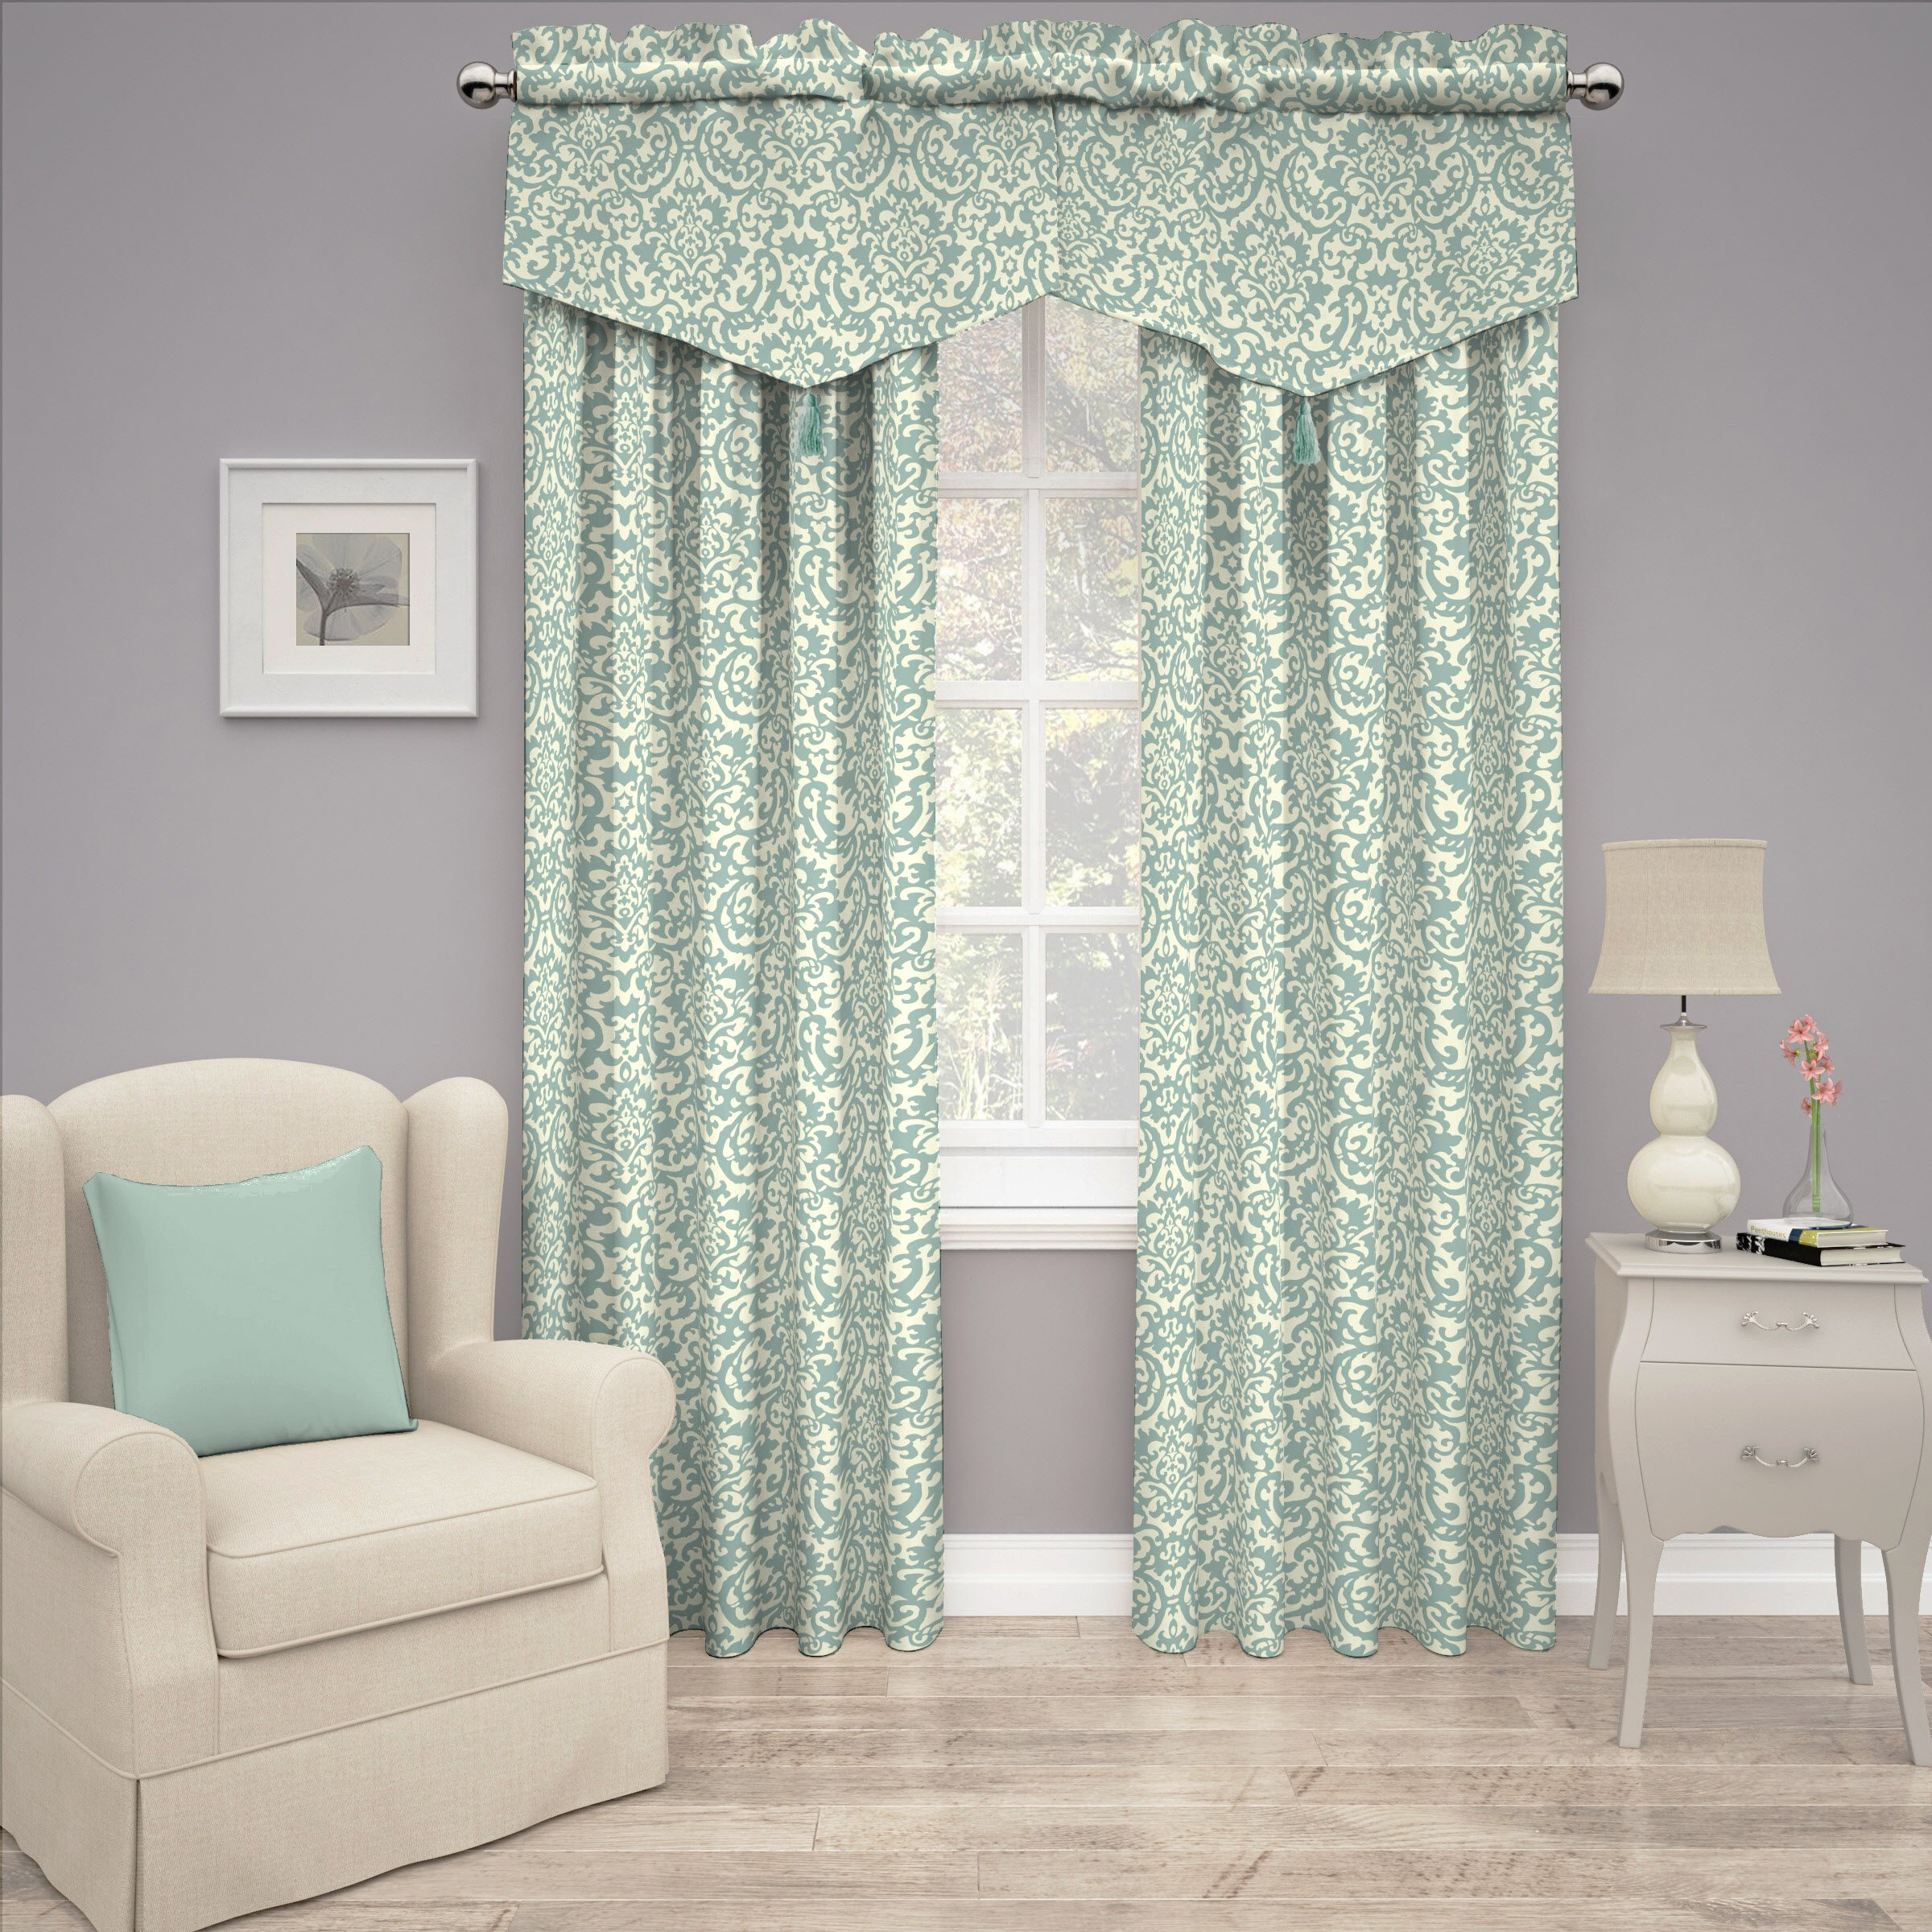 Traditions By Waverly 14974052021SPA Duncan Damask 52-Inch by 21-Inch Window Valance, Spa